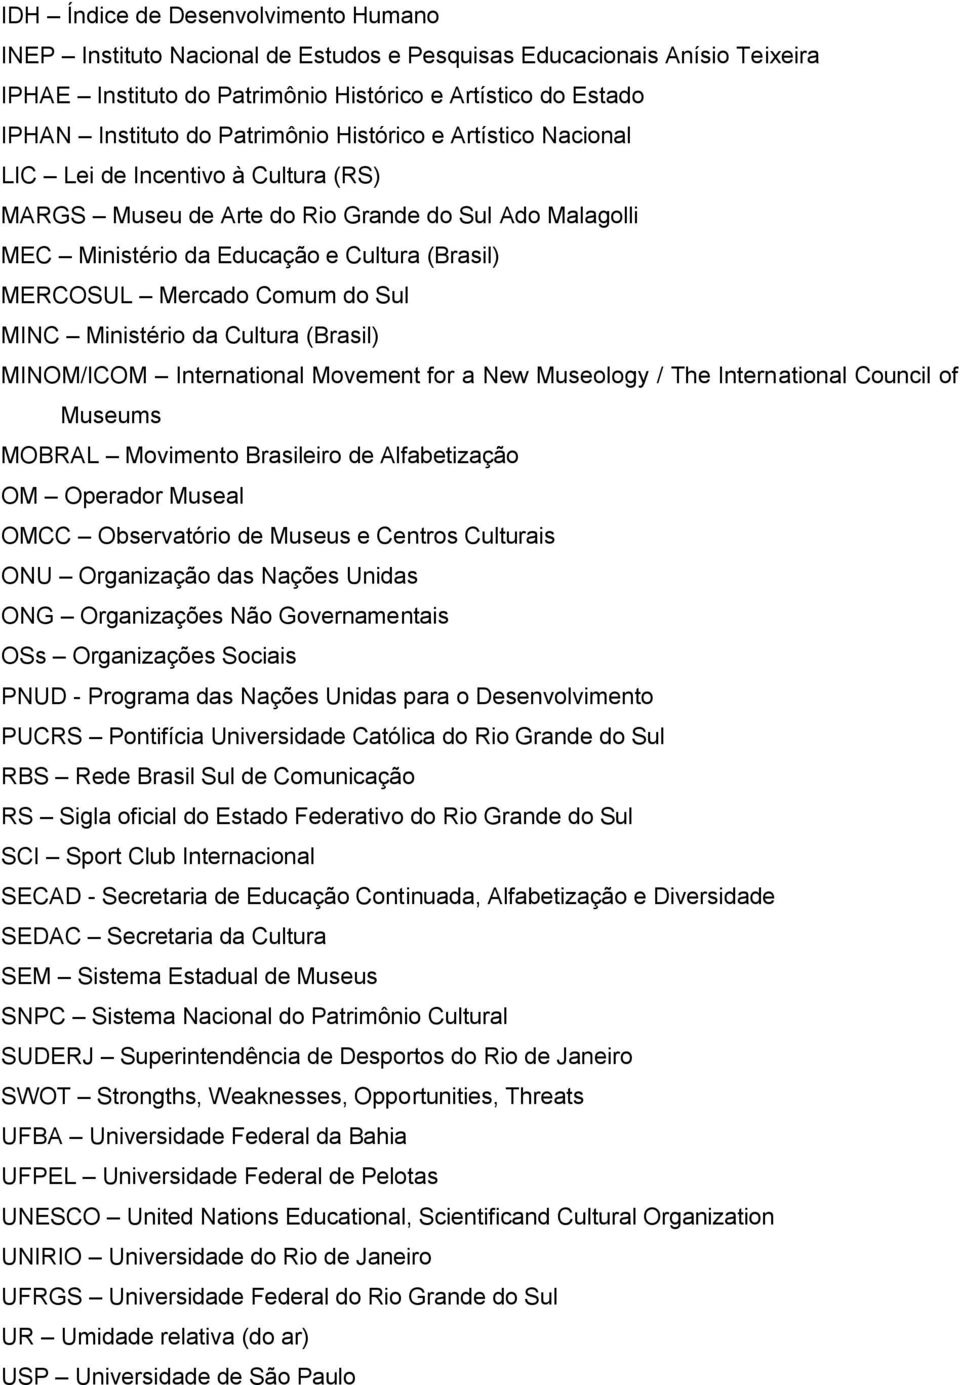 Comum do Sul MINC Ministério da Cultura (Brasil) MINOM/ICOM International Movement for a New Museology / The International Council of Museums MOBRAL Movimento Brasileiro de Alfabetização OM Operador